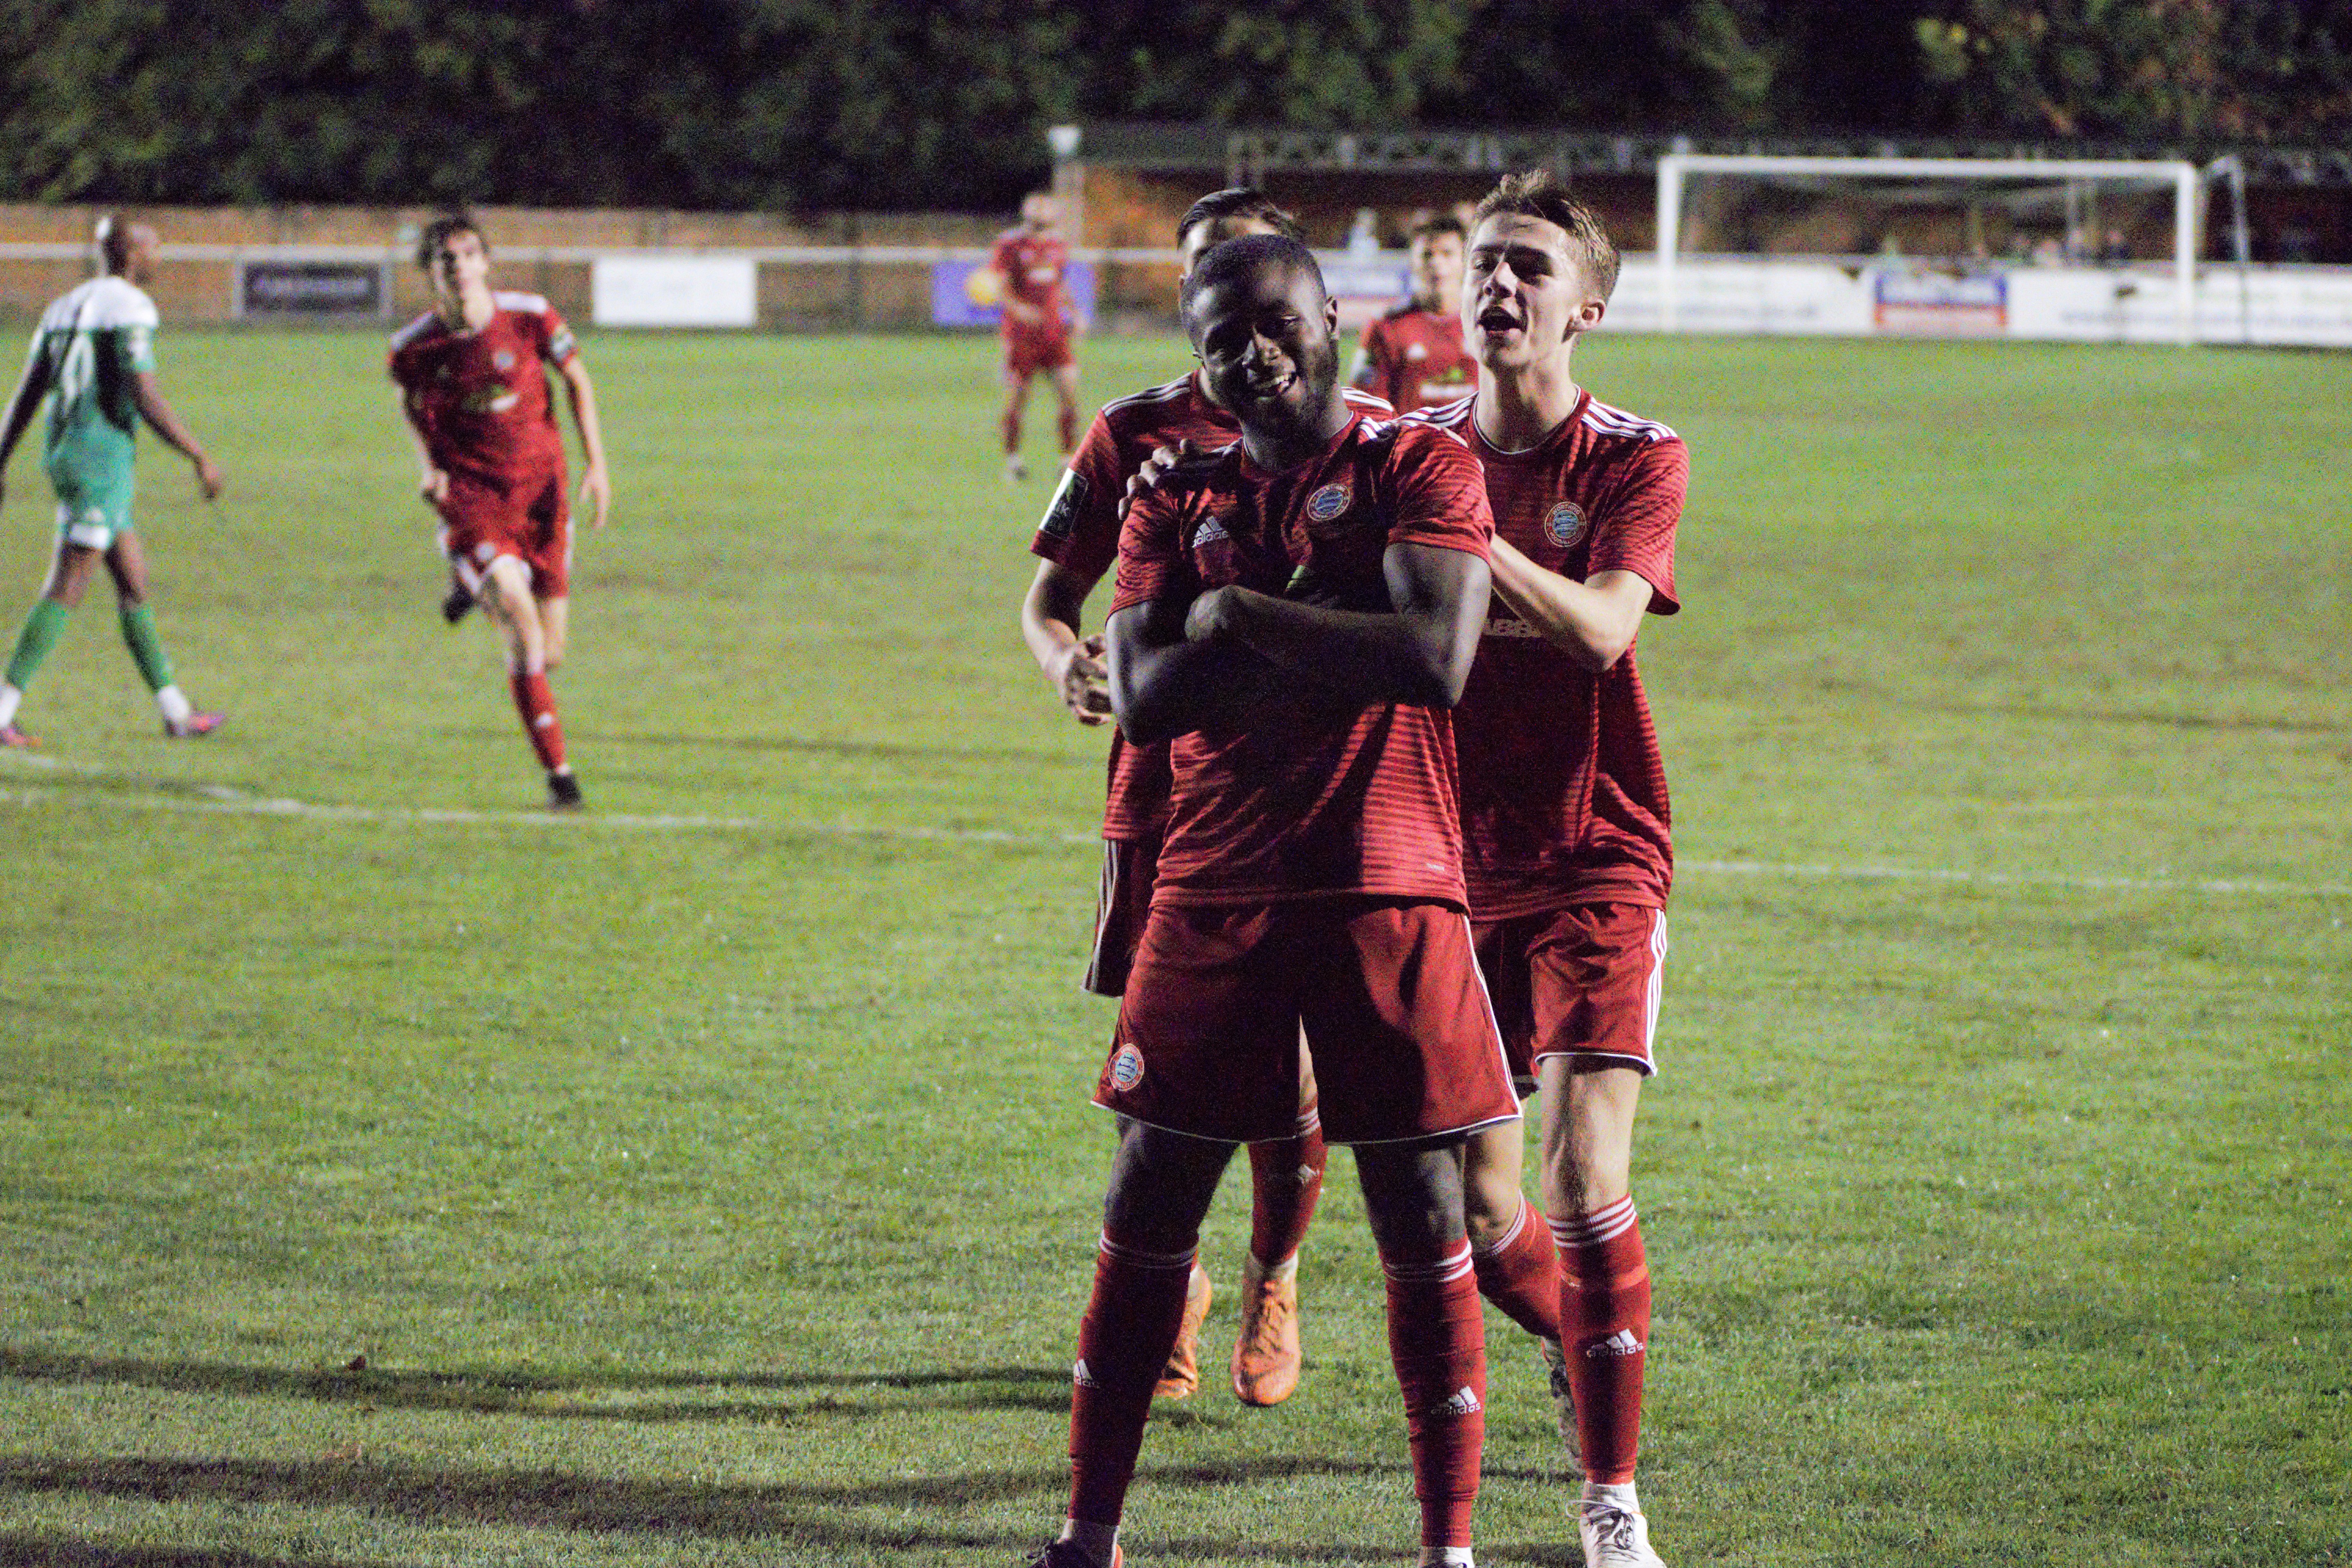 Read the full article - HIGHLIGHTS: Leatherhead [A] – The Velocity Trophy